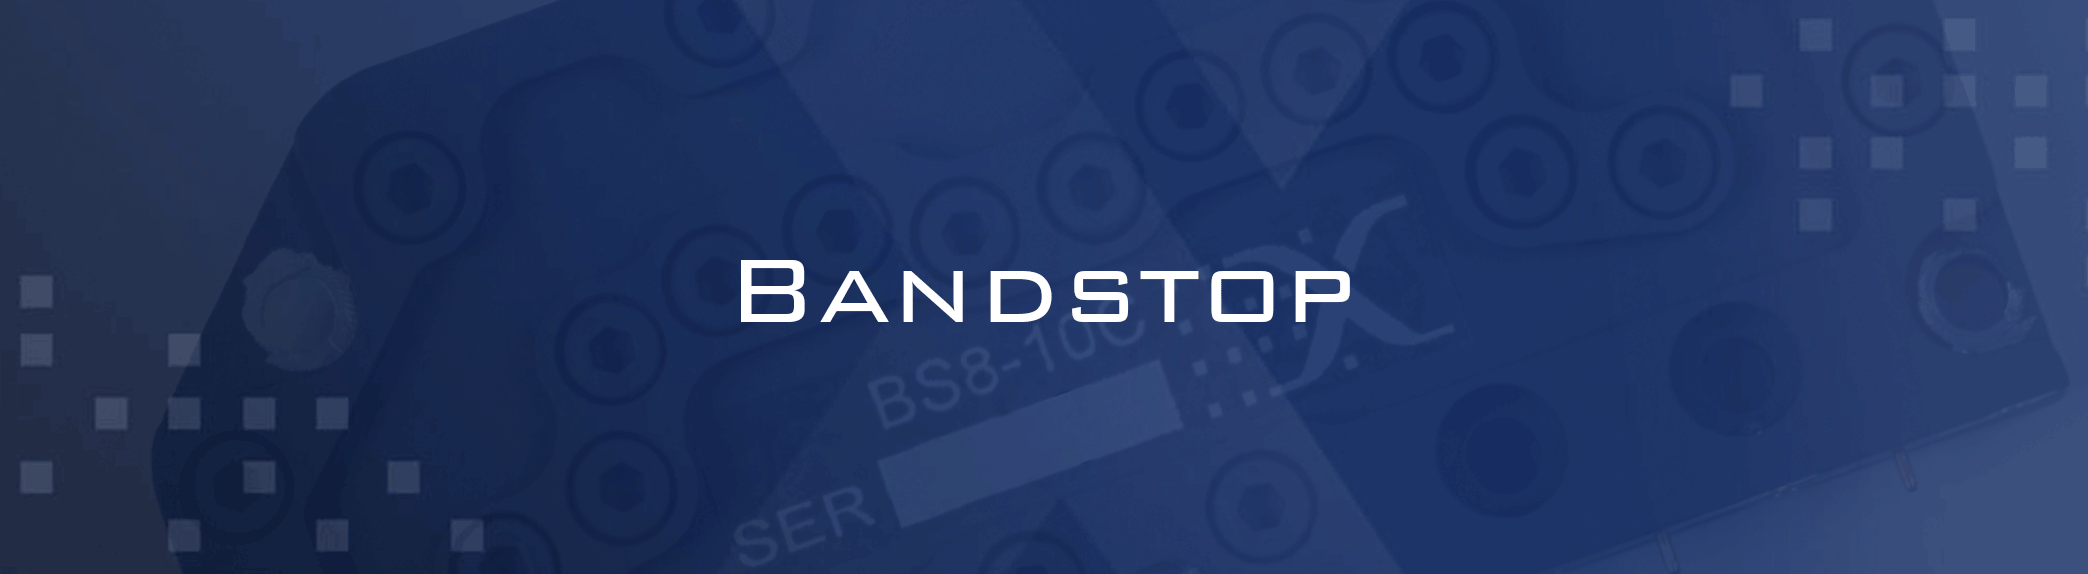 Band Stop